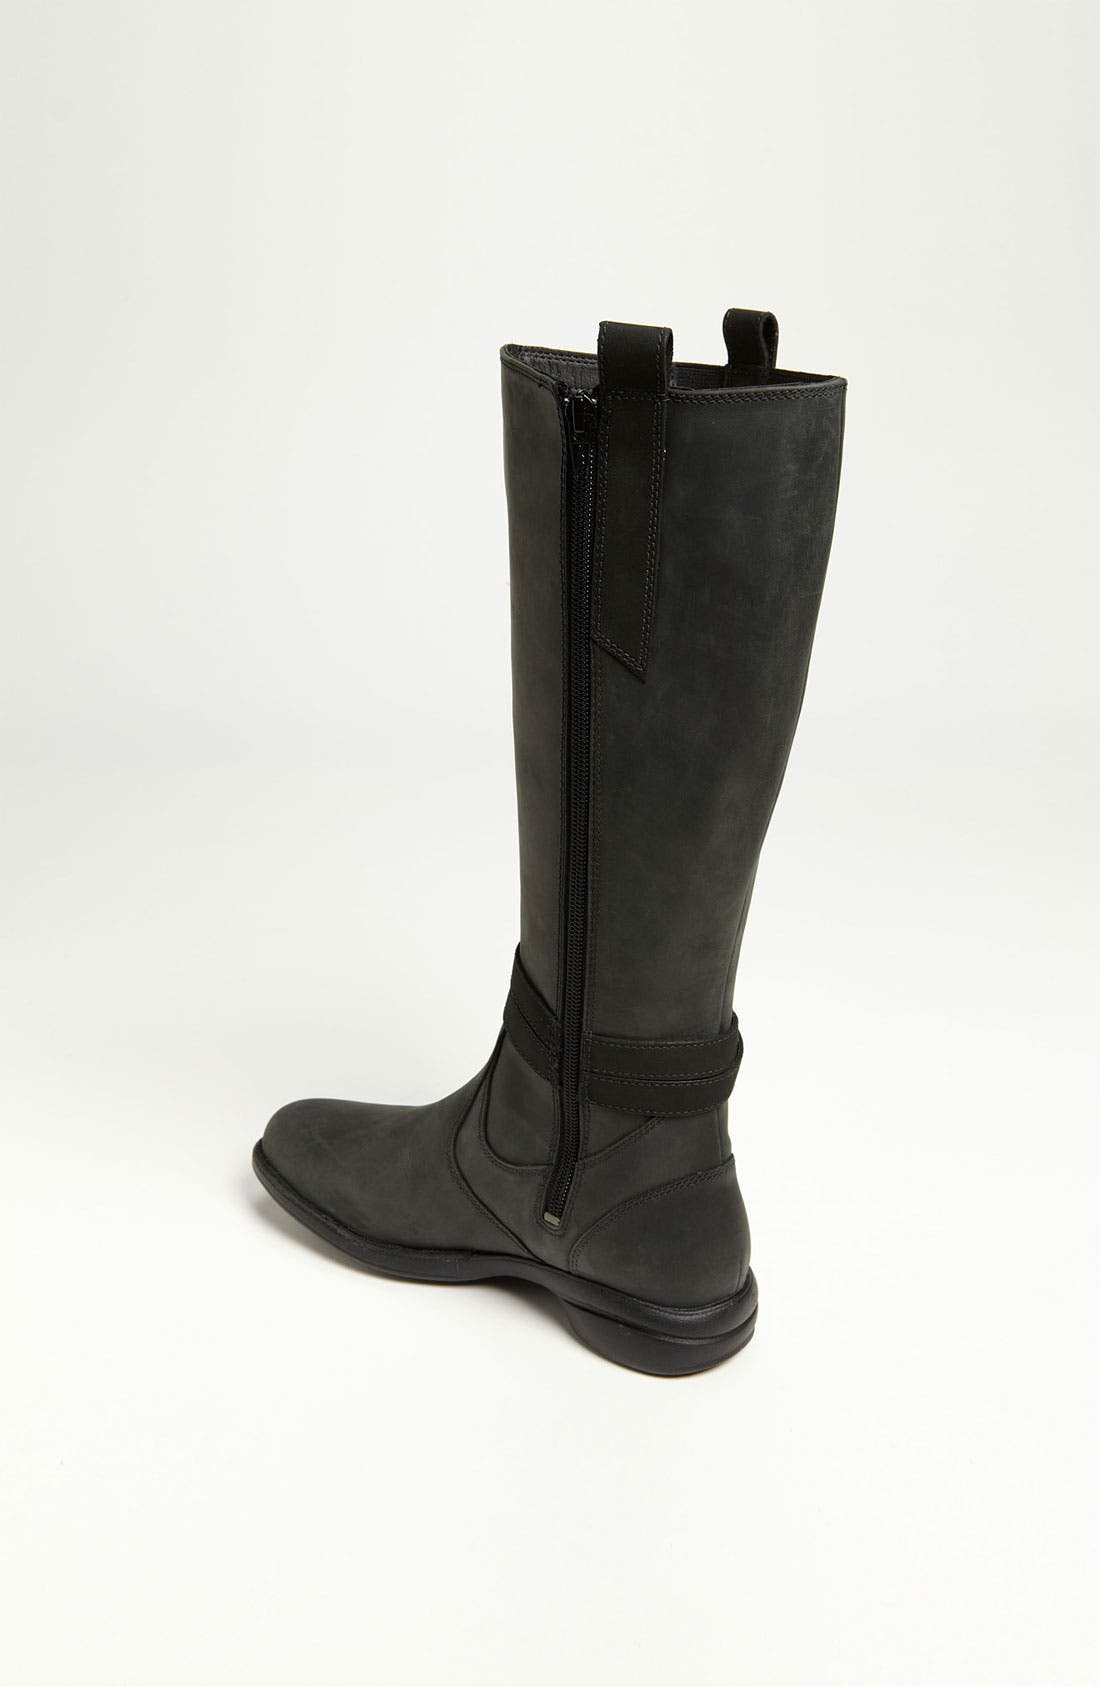 'Captiva Strap' Waterproof Boot,                             Alternate thumbnail 2, color,                             001